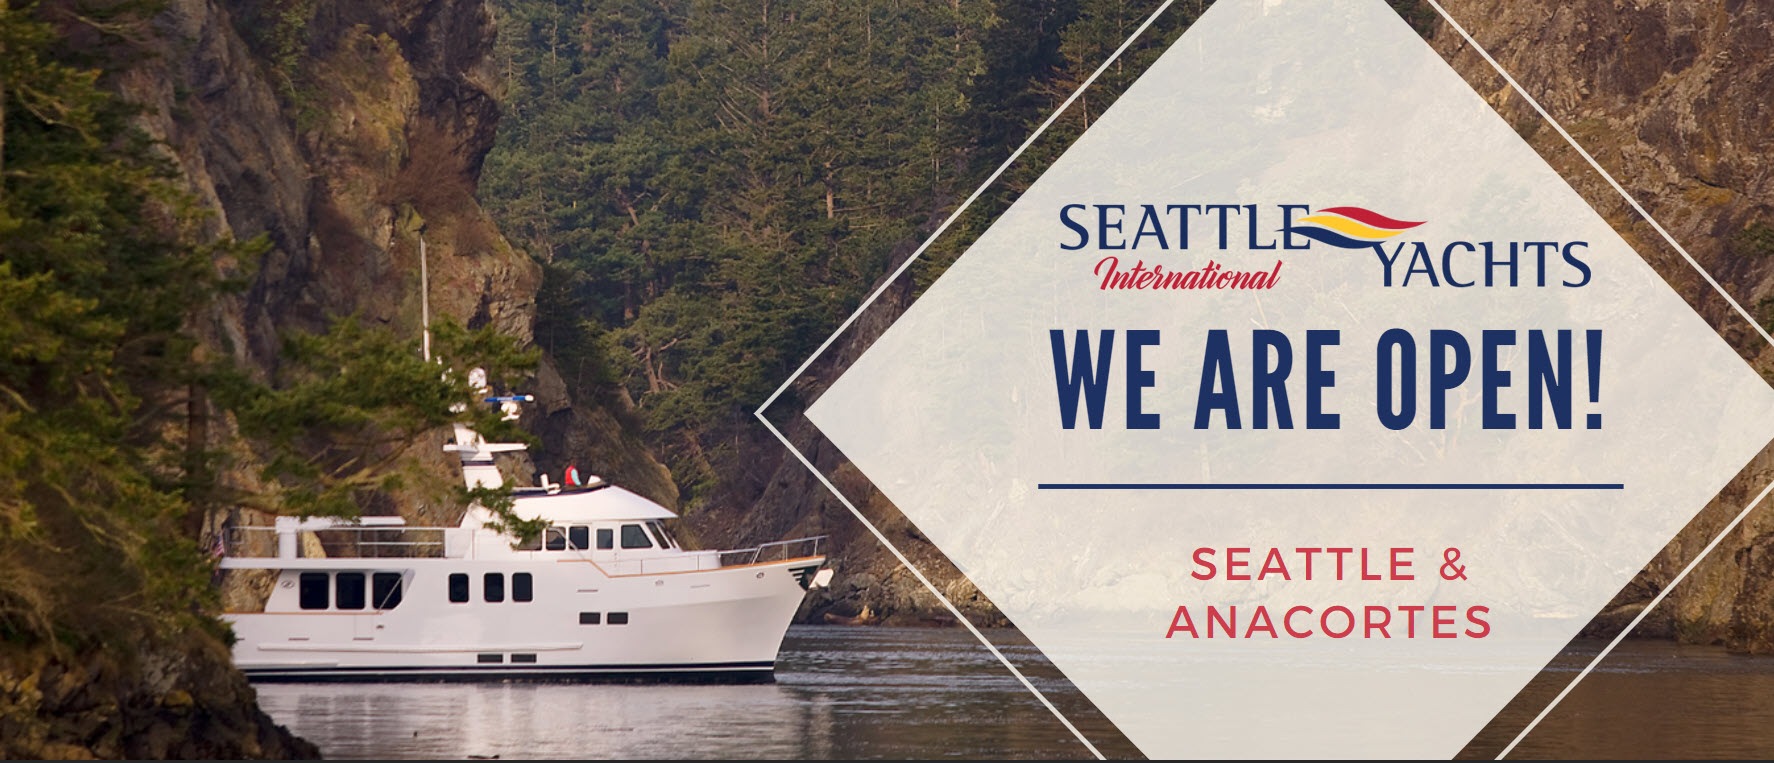 seattle yachts opening offices